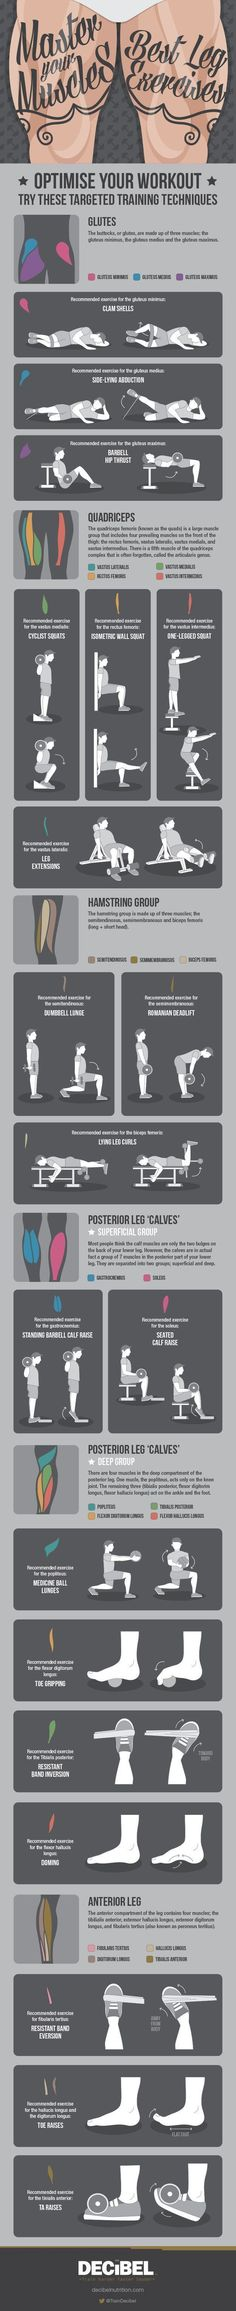 Six-pack abs, gain muscle or weight loss, these workout plan…